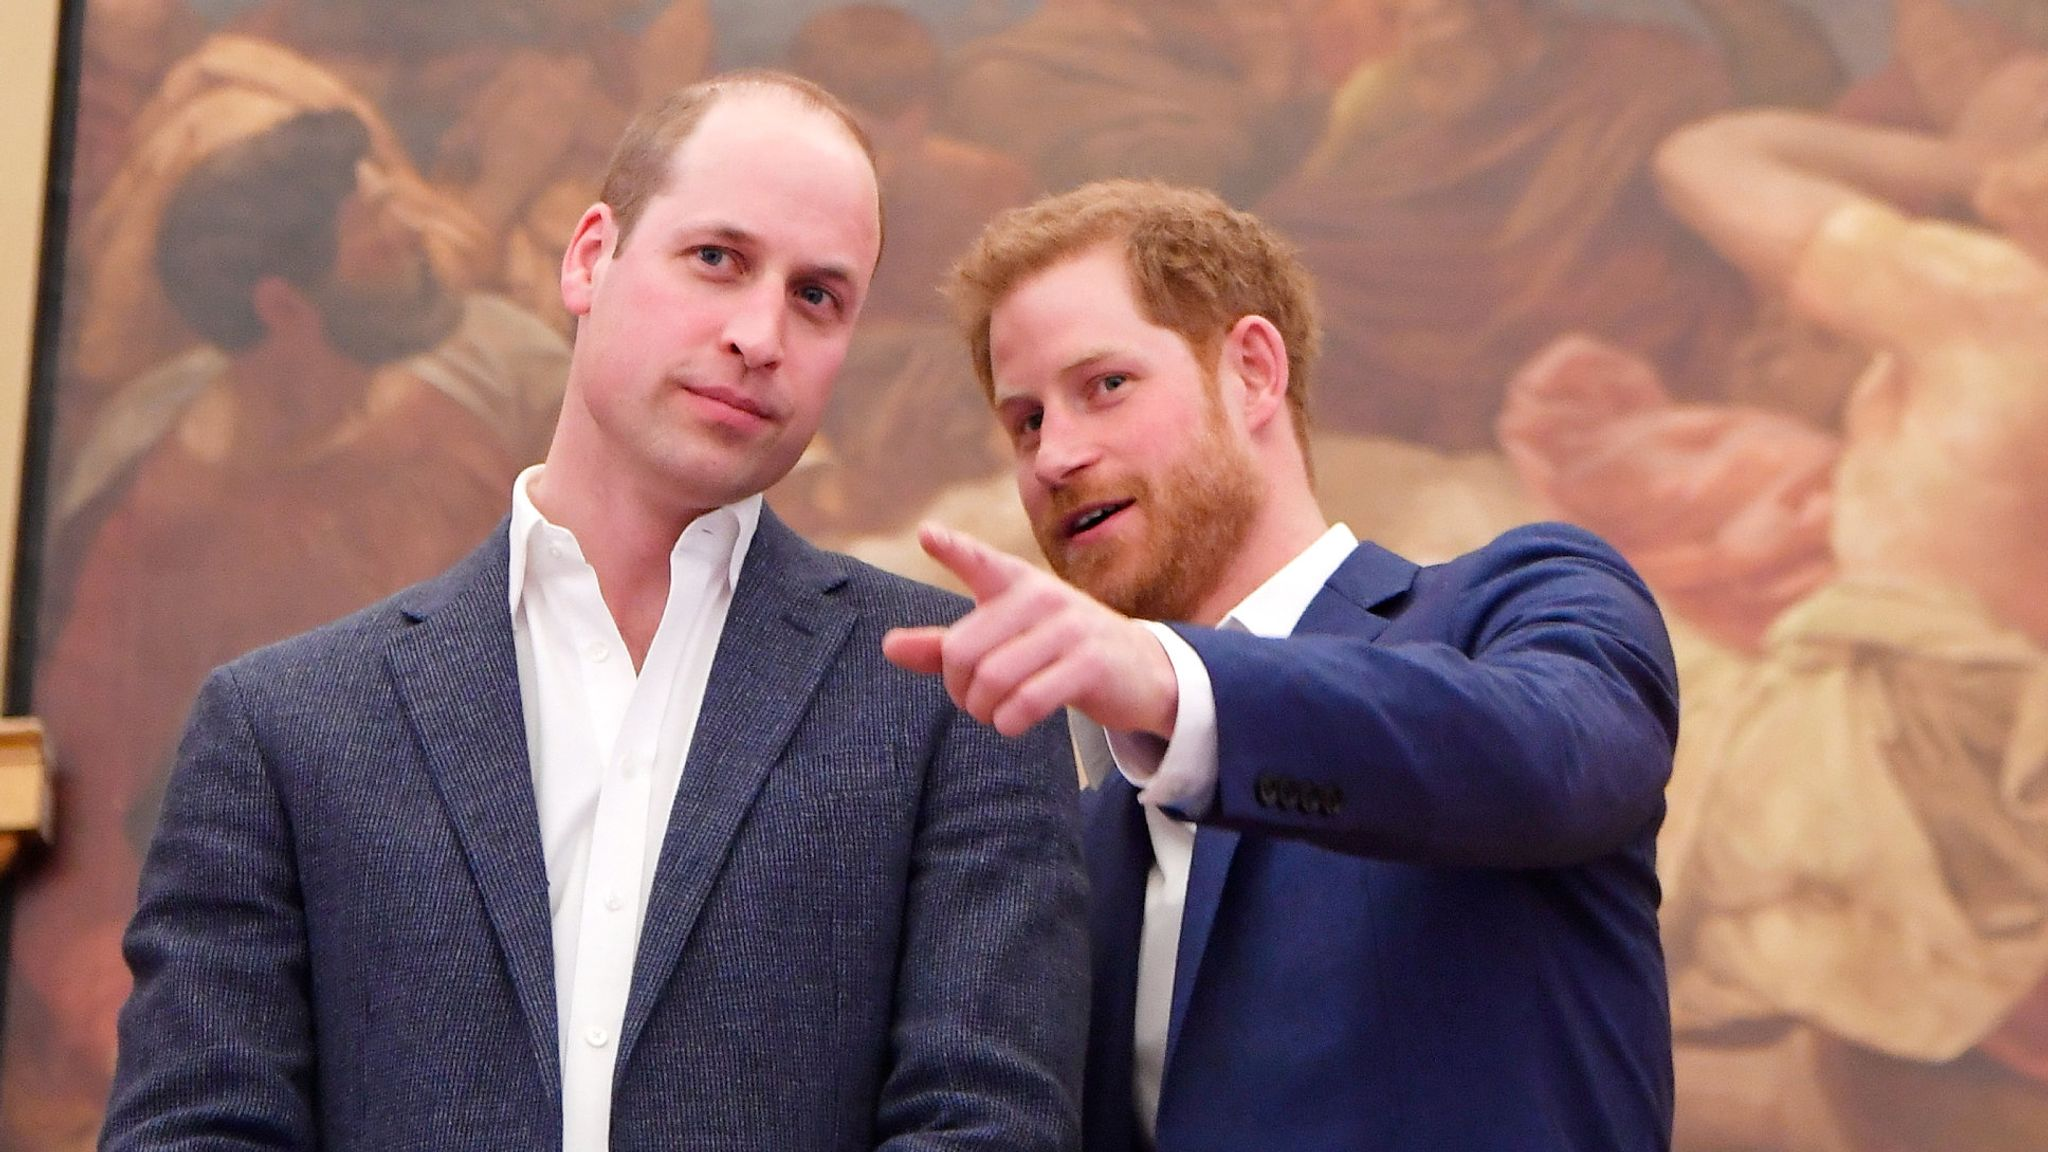 william and harry did not talk for two months over royal departure author claims uk news sky news william and harry did not talk for two